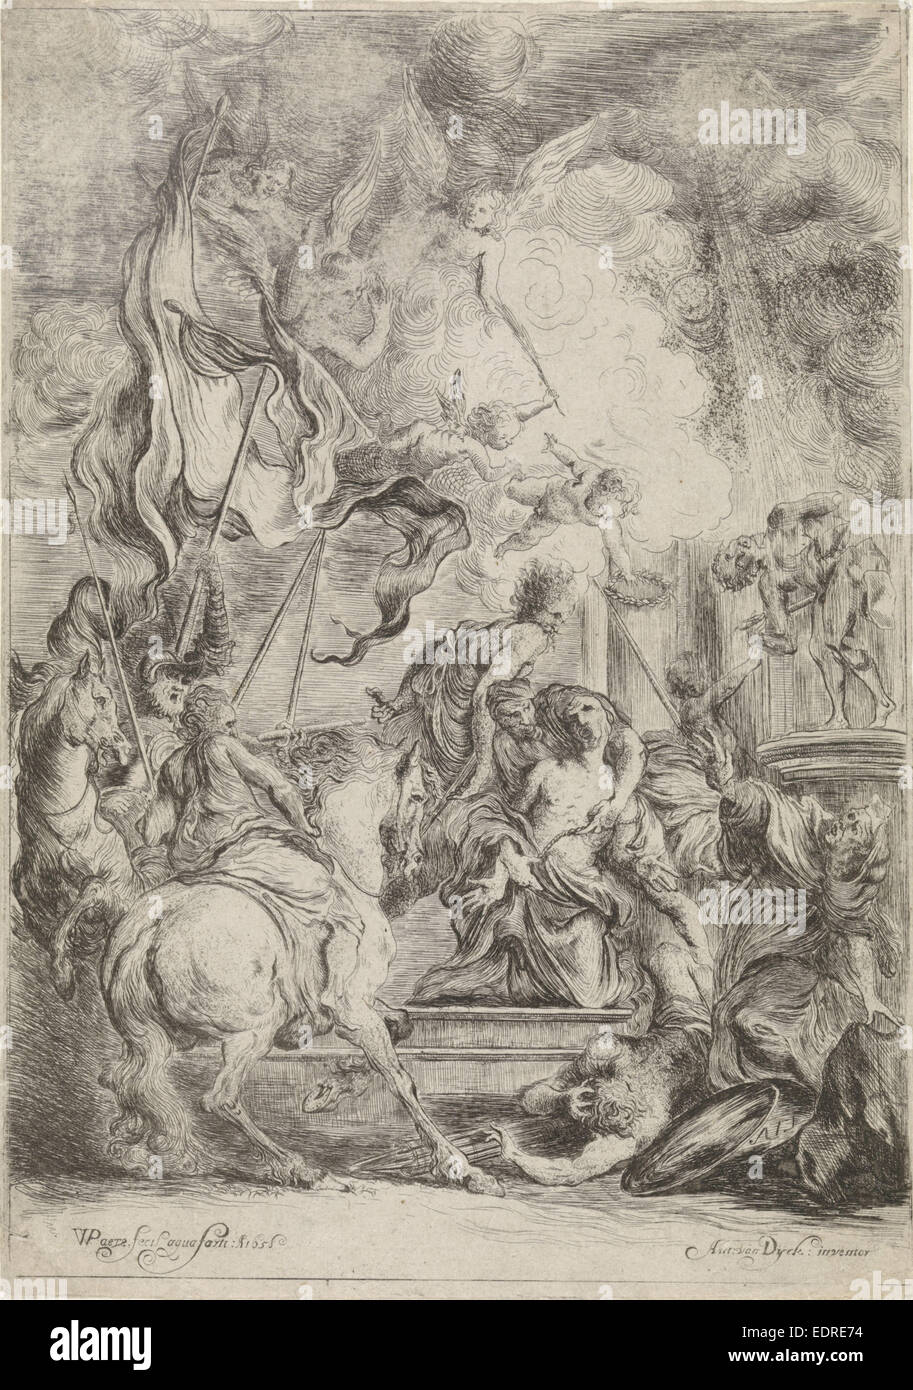 Martyrdom of St. George, Willem Paets, 1658 - Stock Image